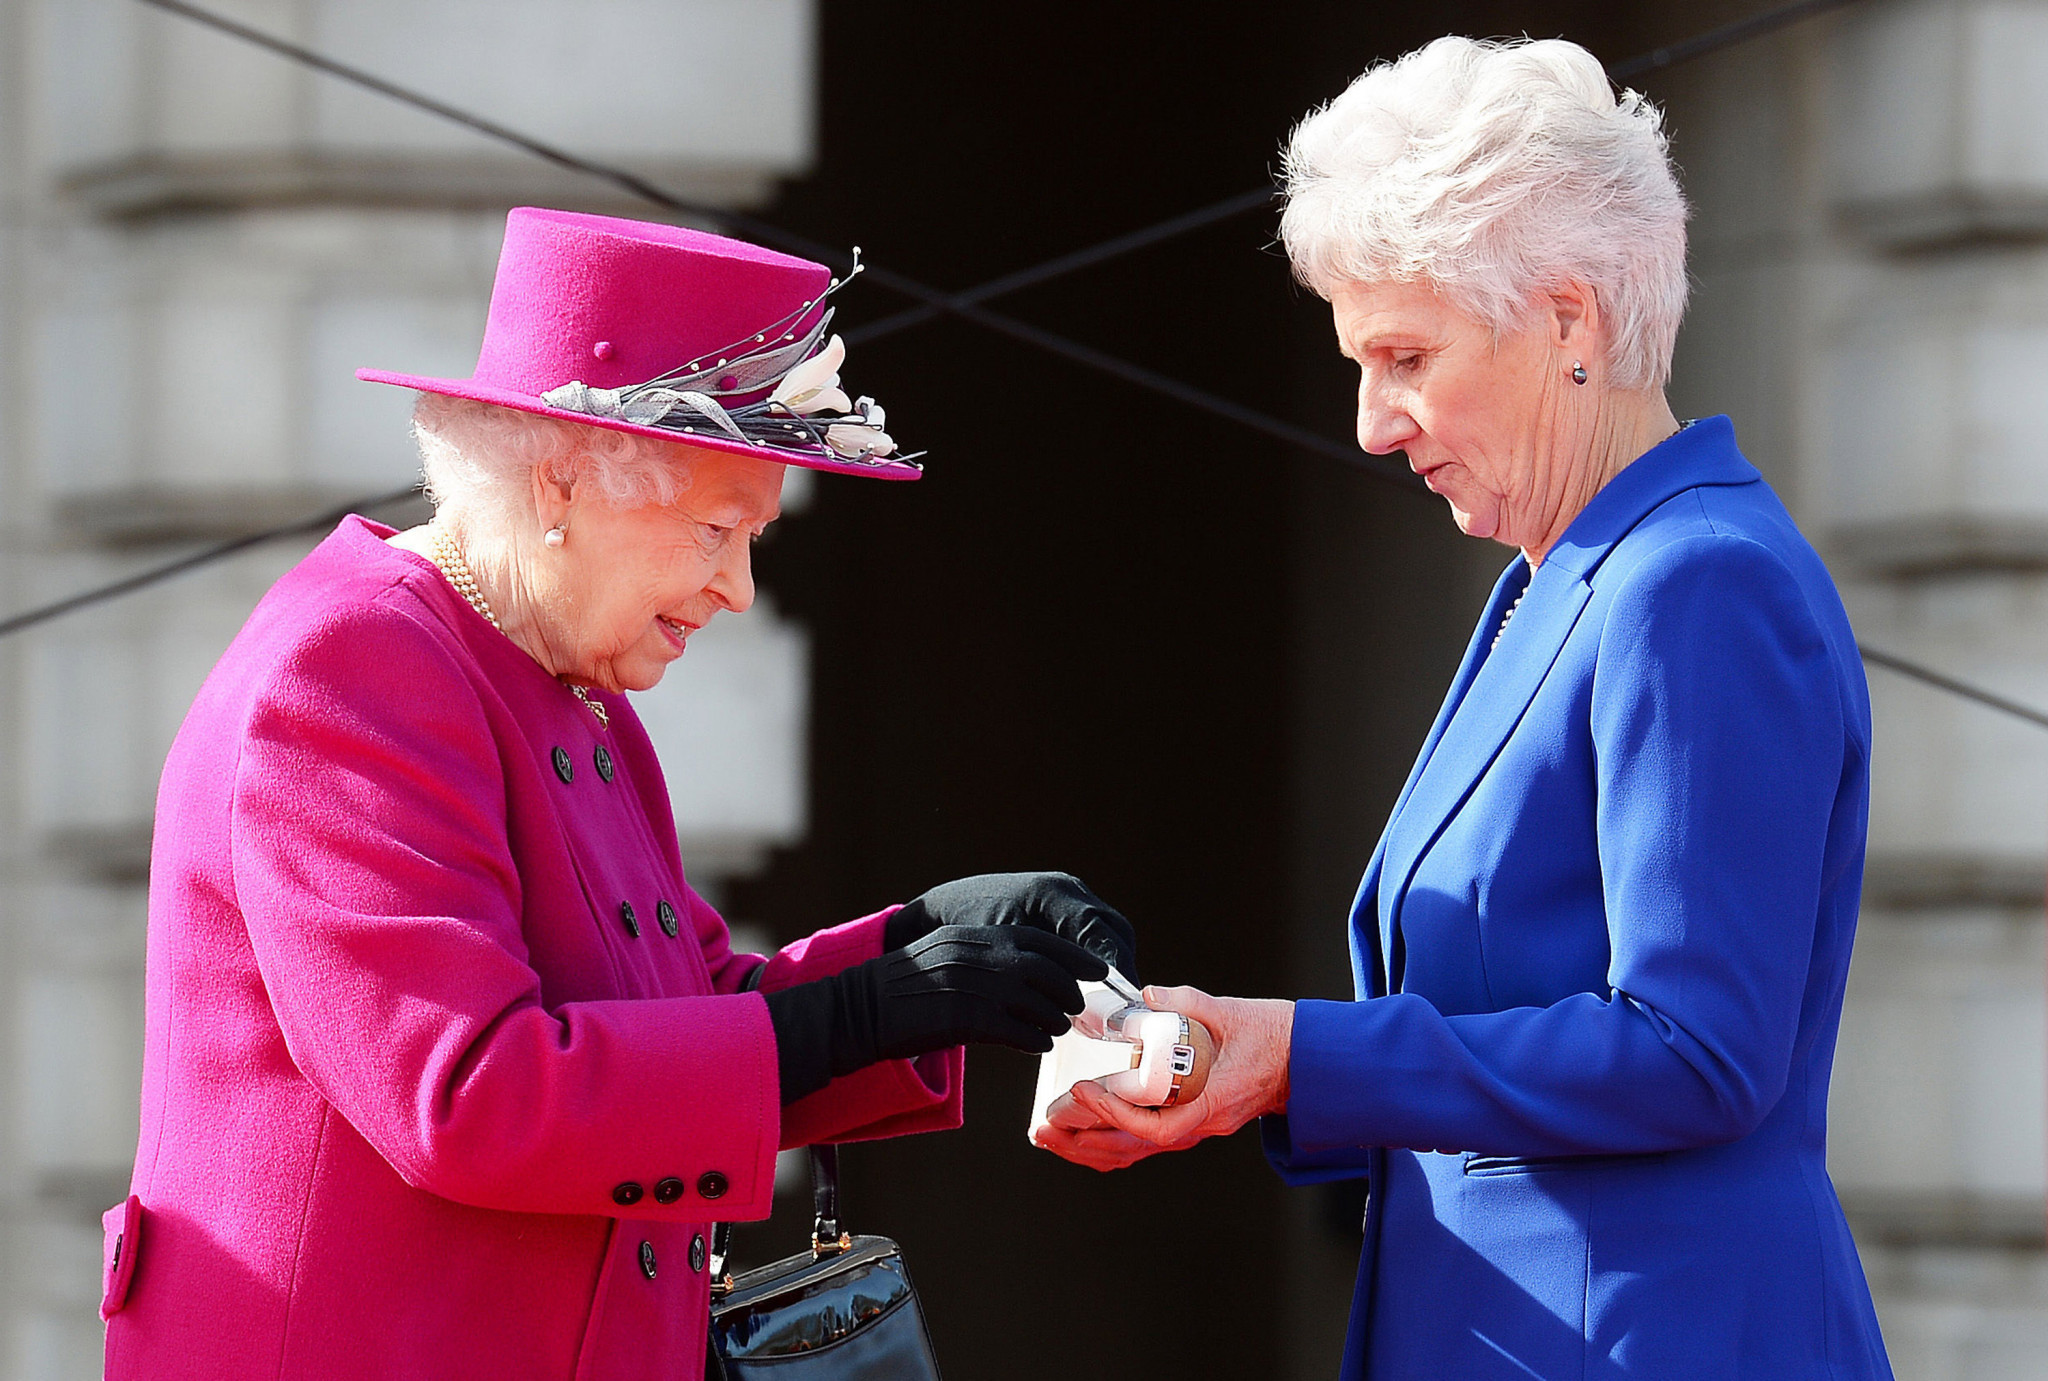 Commonwealth Games Federation President Dame Louise Martin, right, accepts a message for the Baton from Queen Elizabeth II ahead of Gold Coast 2018 ©Getty Images